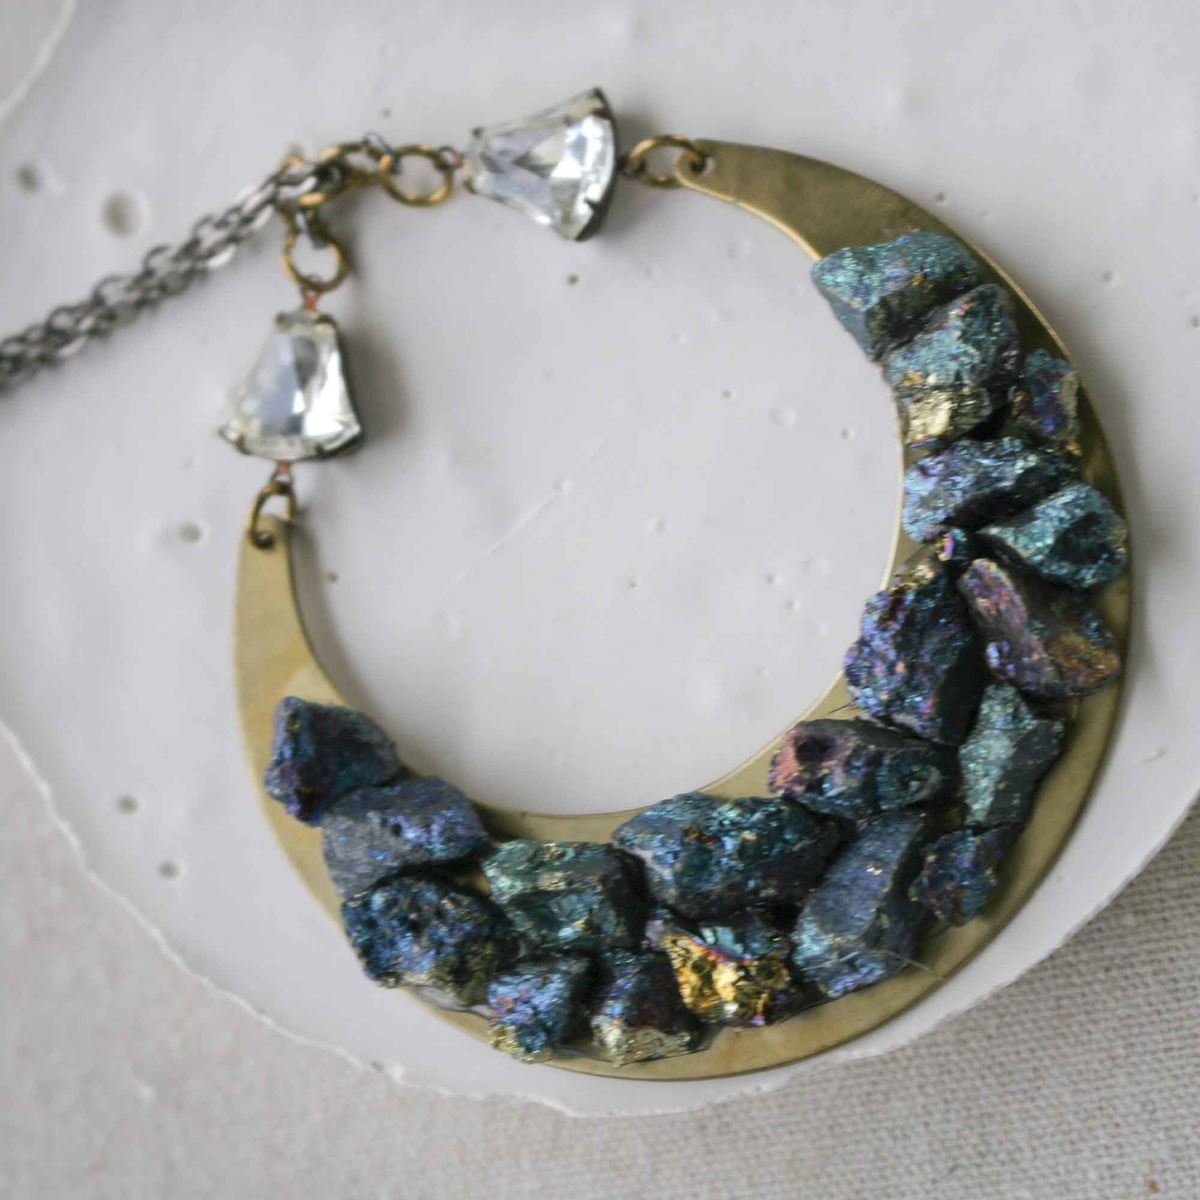 Crushed Peaock Ore on a Large Brass Crescent Pendant Necklace - product image